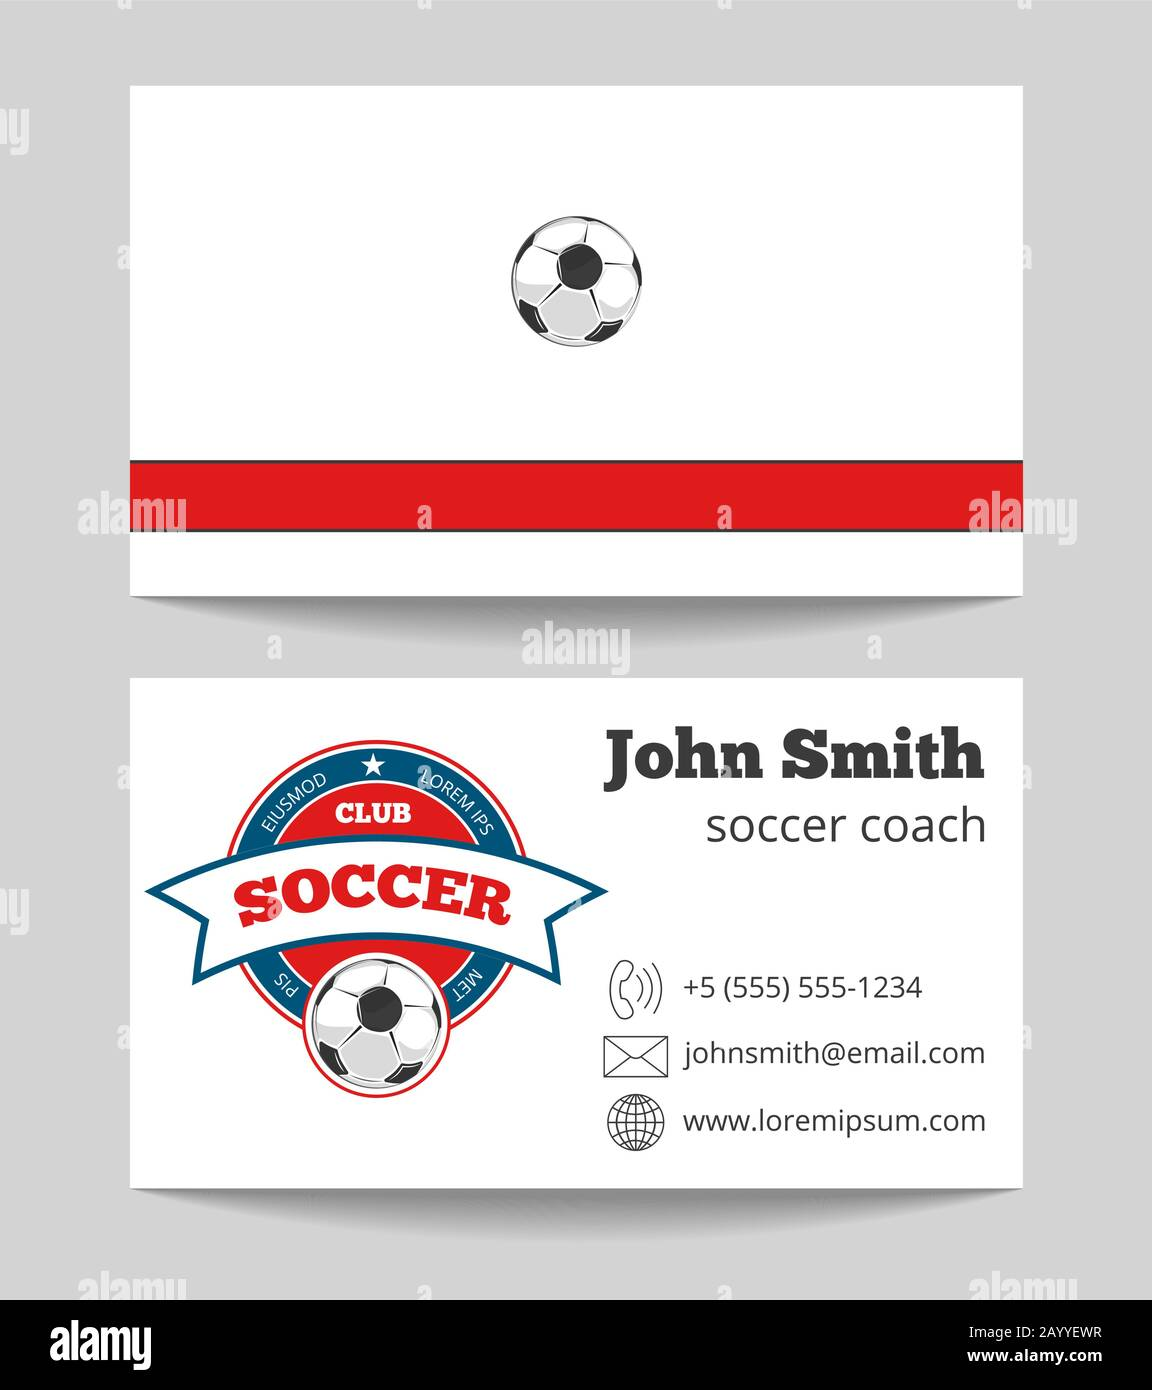 Soccer coach business card template with logo. Football trainer Inside Soccer Referee Game Card Template